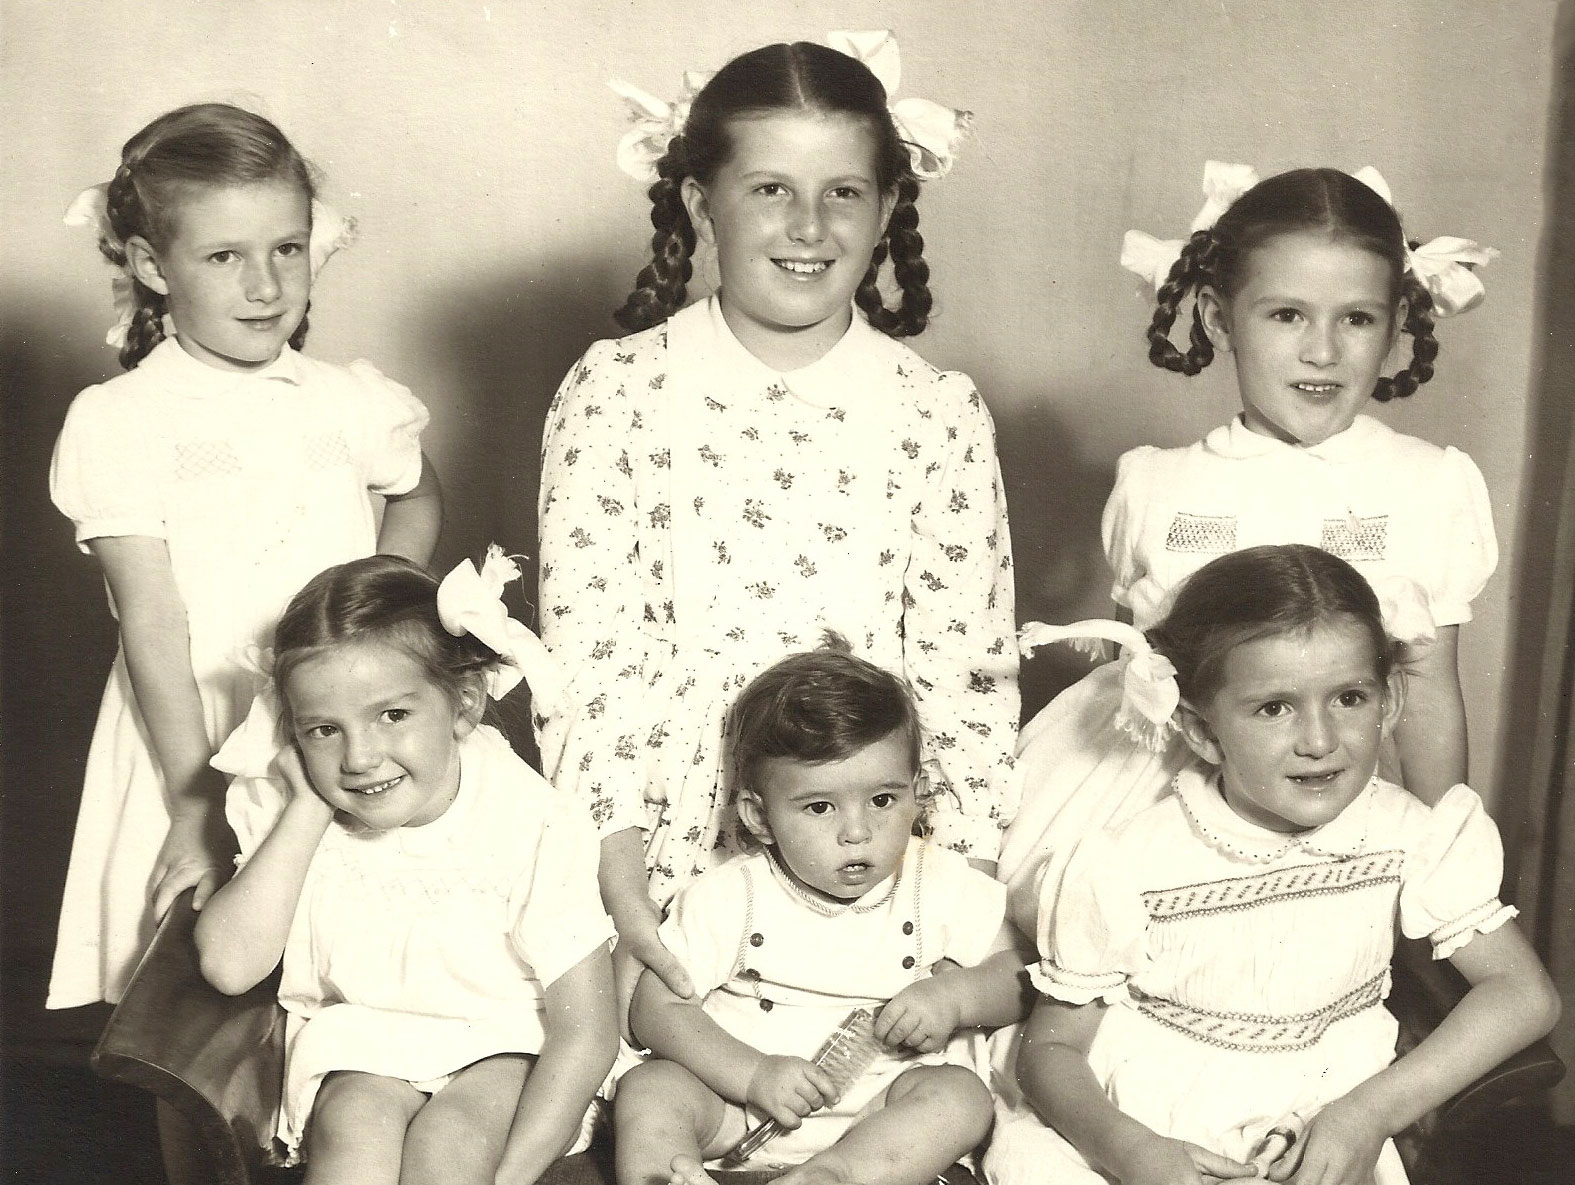 Domitilla and Danny's children ca 1957